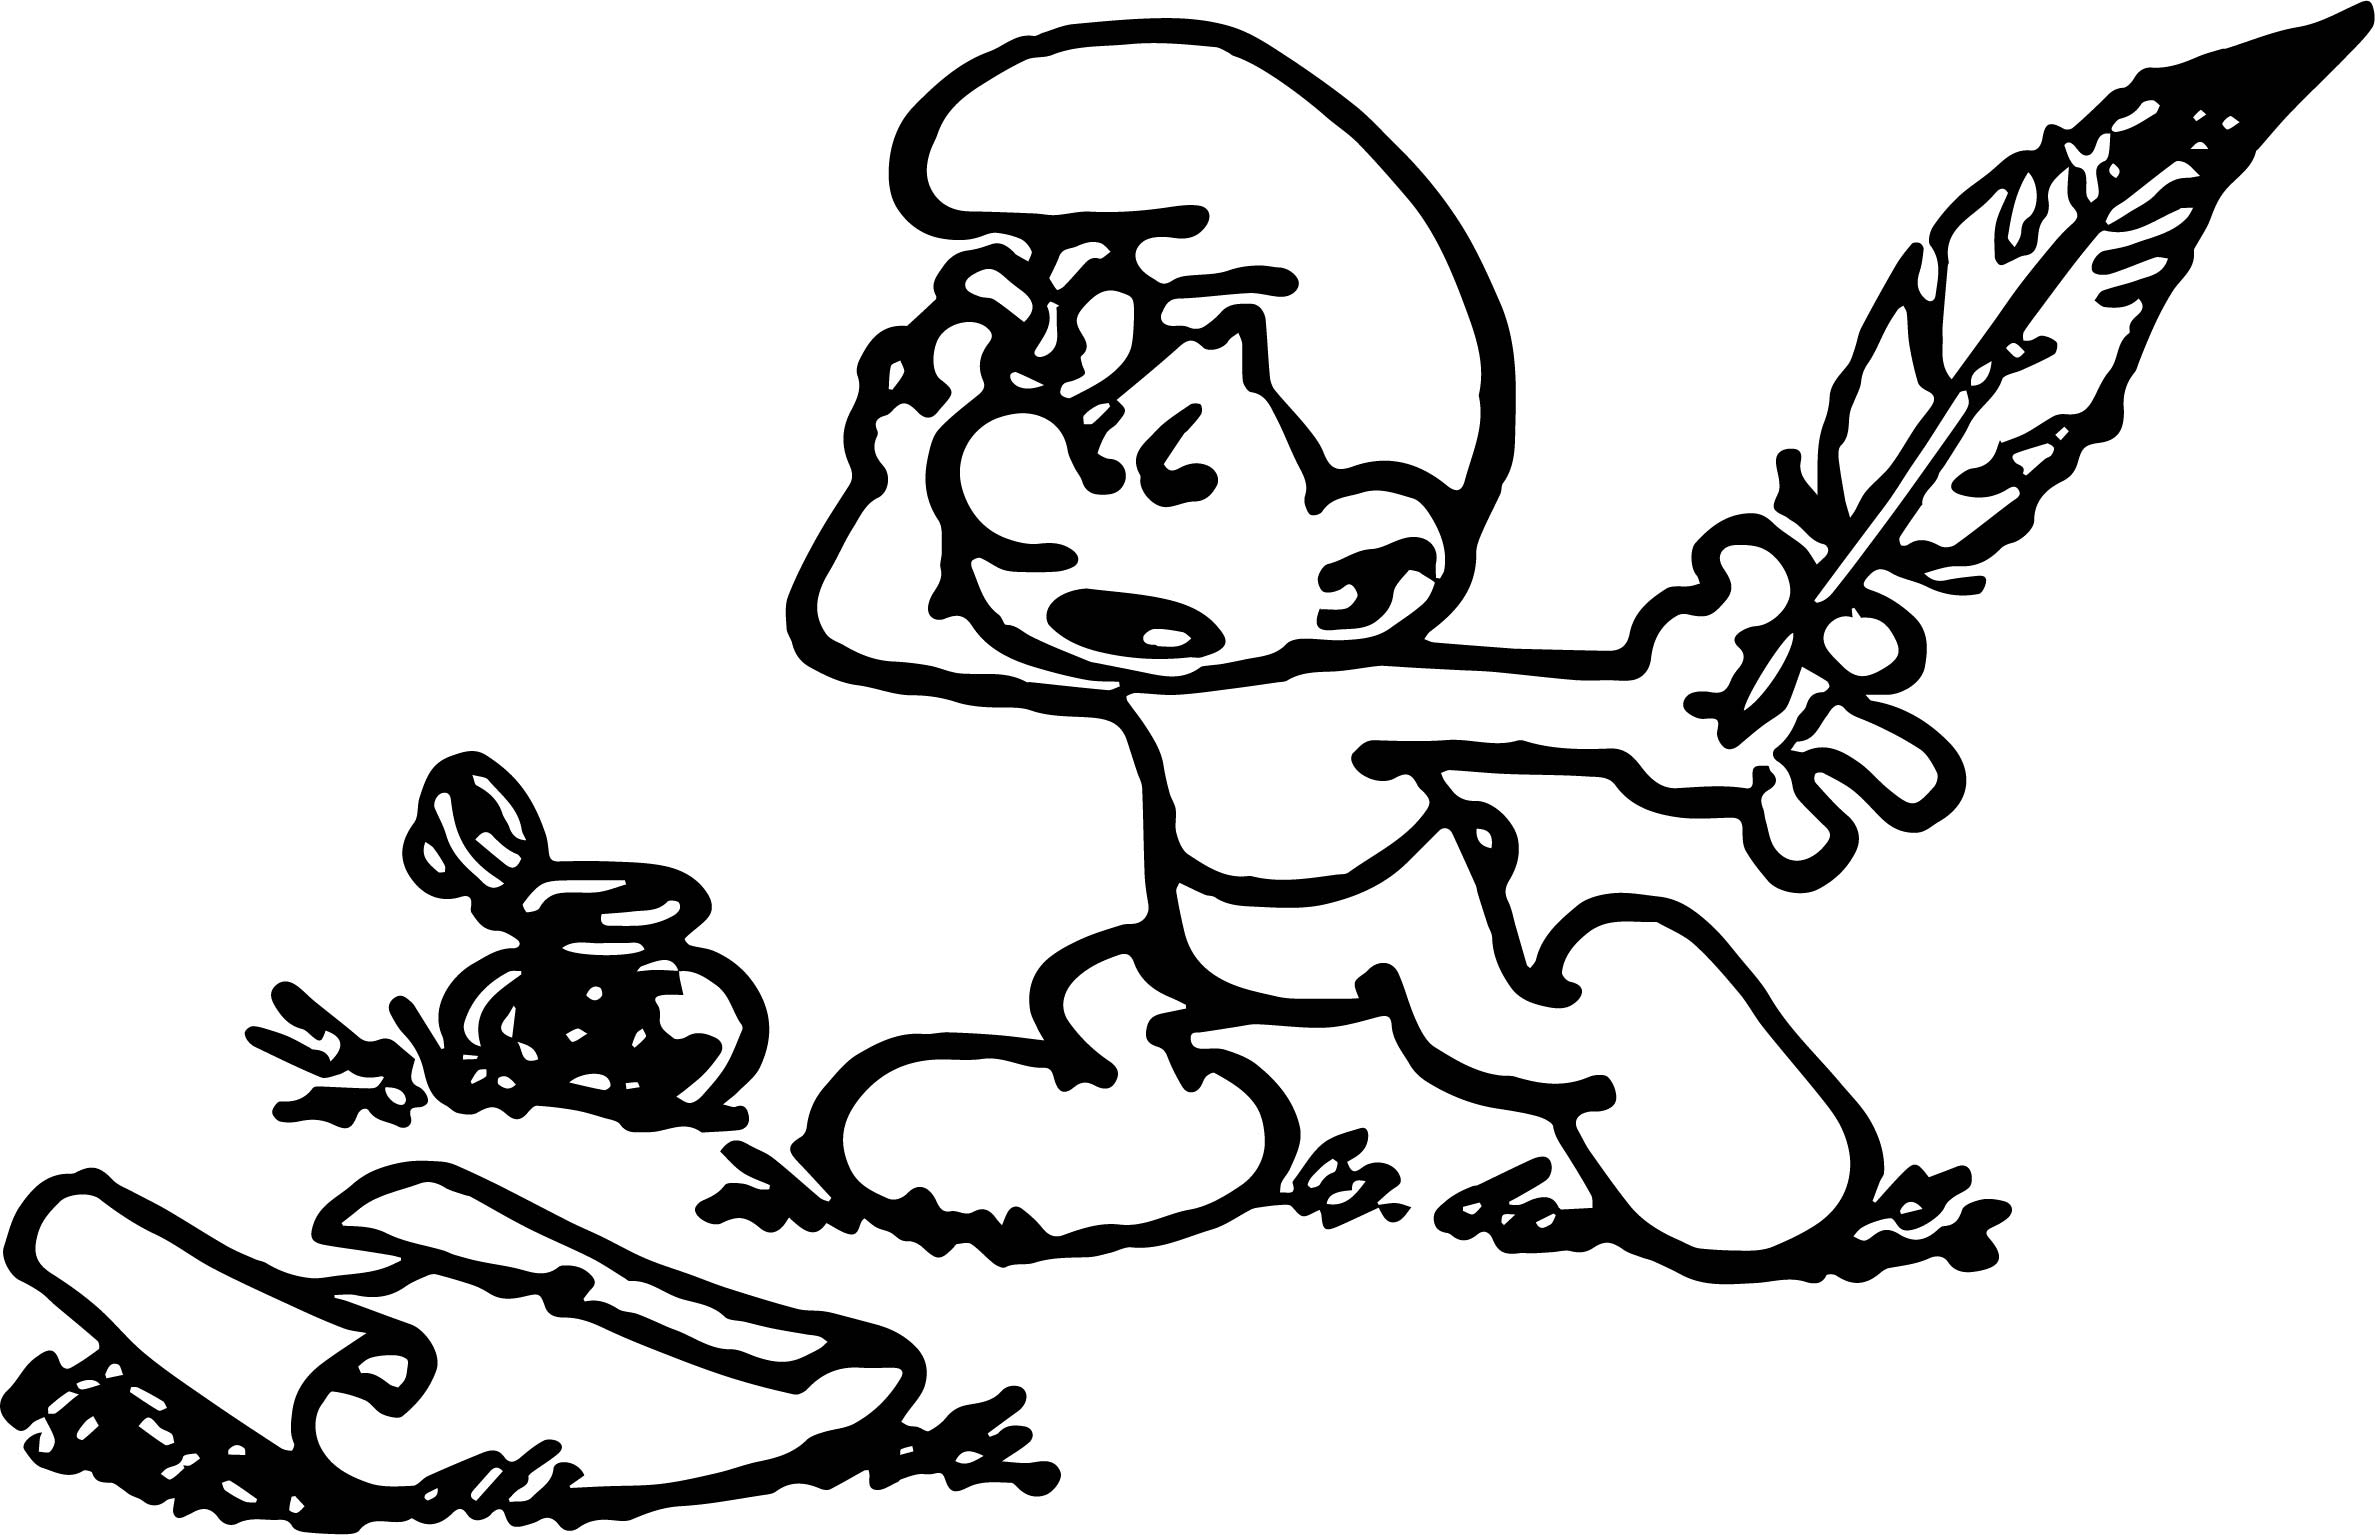 Smurf Poet Smurf Coloring Page